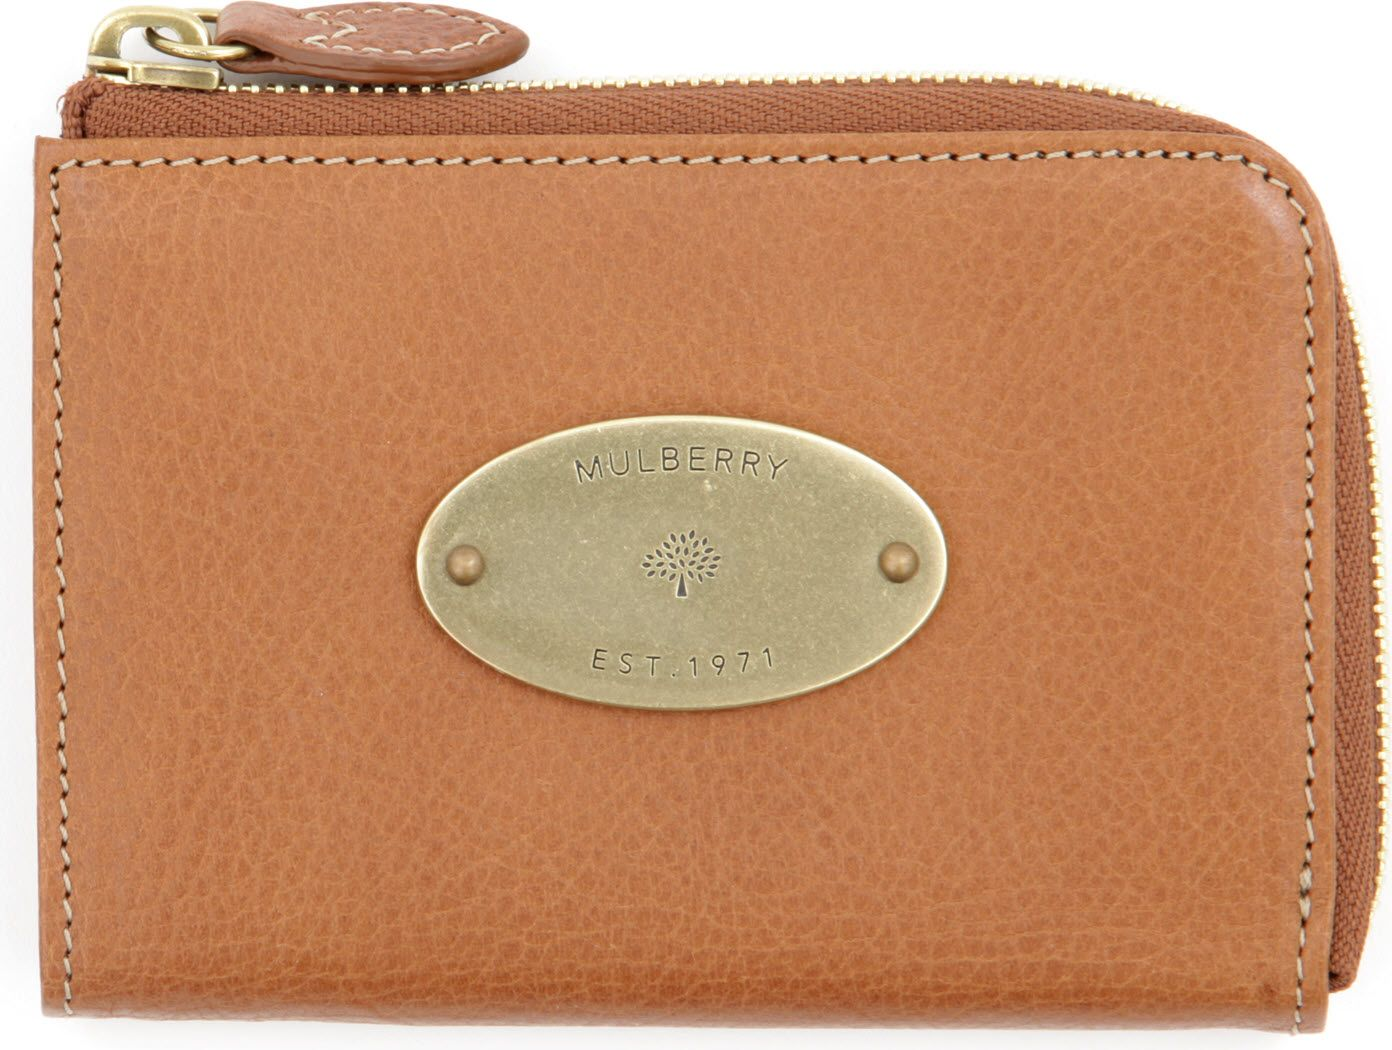 7e8d08a681 Mulberry Slim Vegetable Tanned Leather Coin Purse in Brown - Lyst